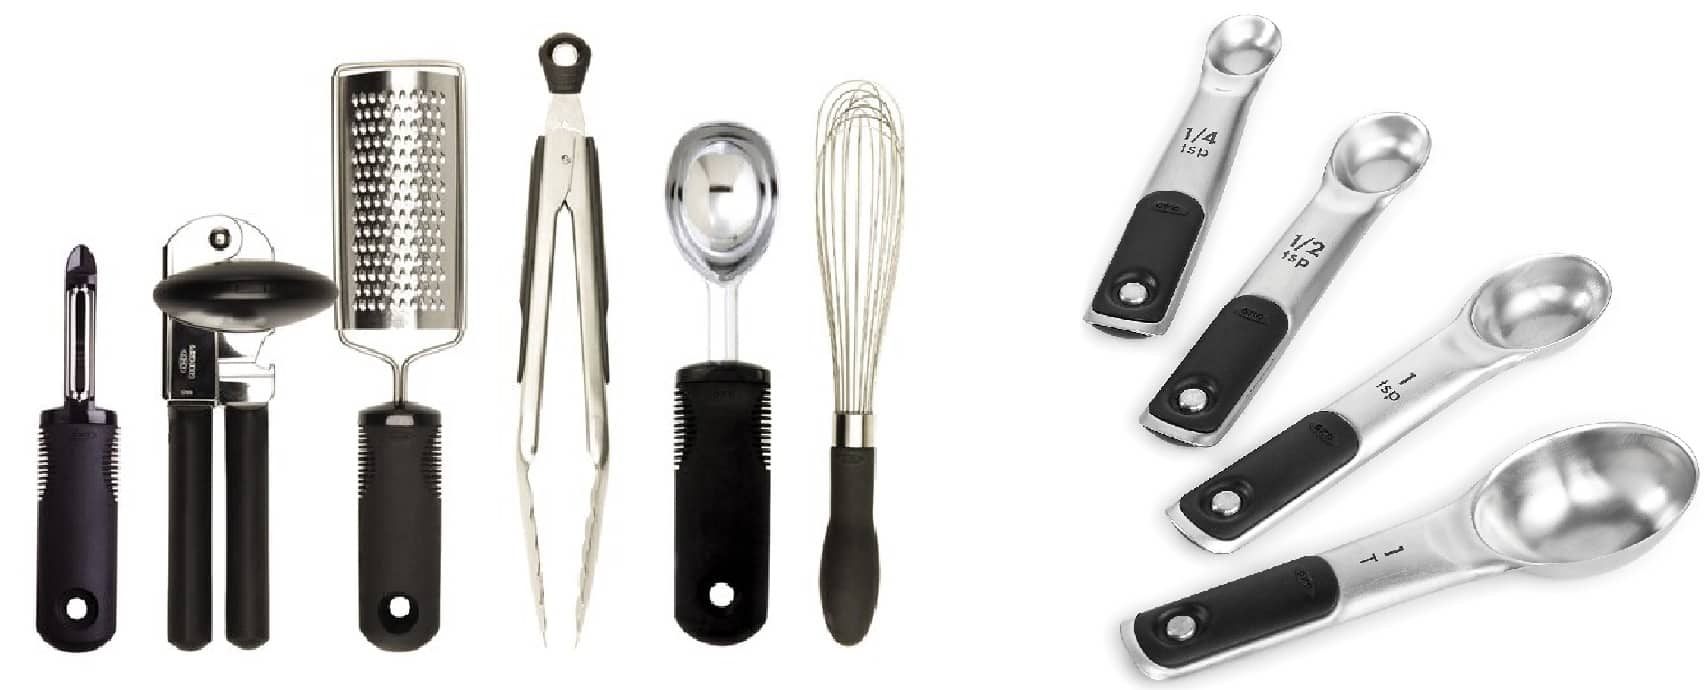 Oxo Good Grip 6 Piece Kitchen Essentials Set 4 Piece Magnetic